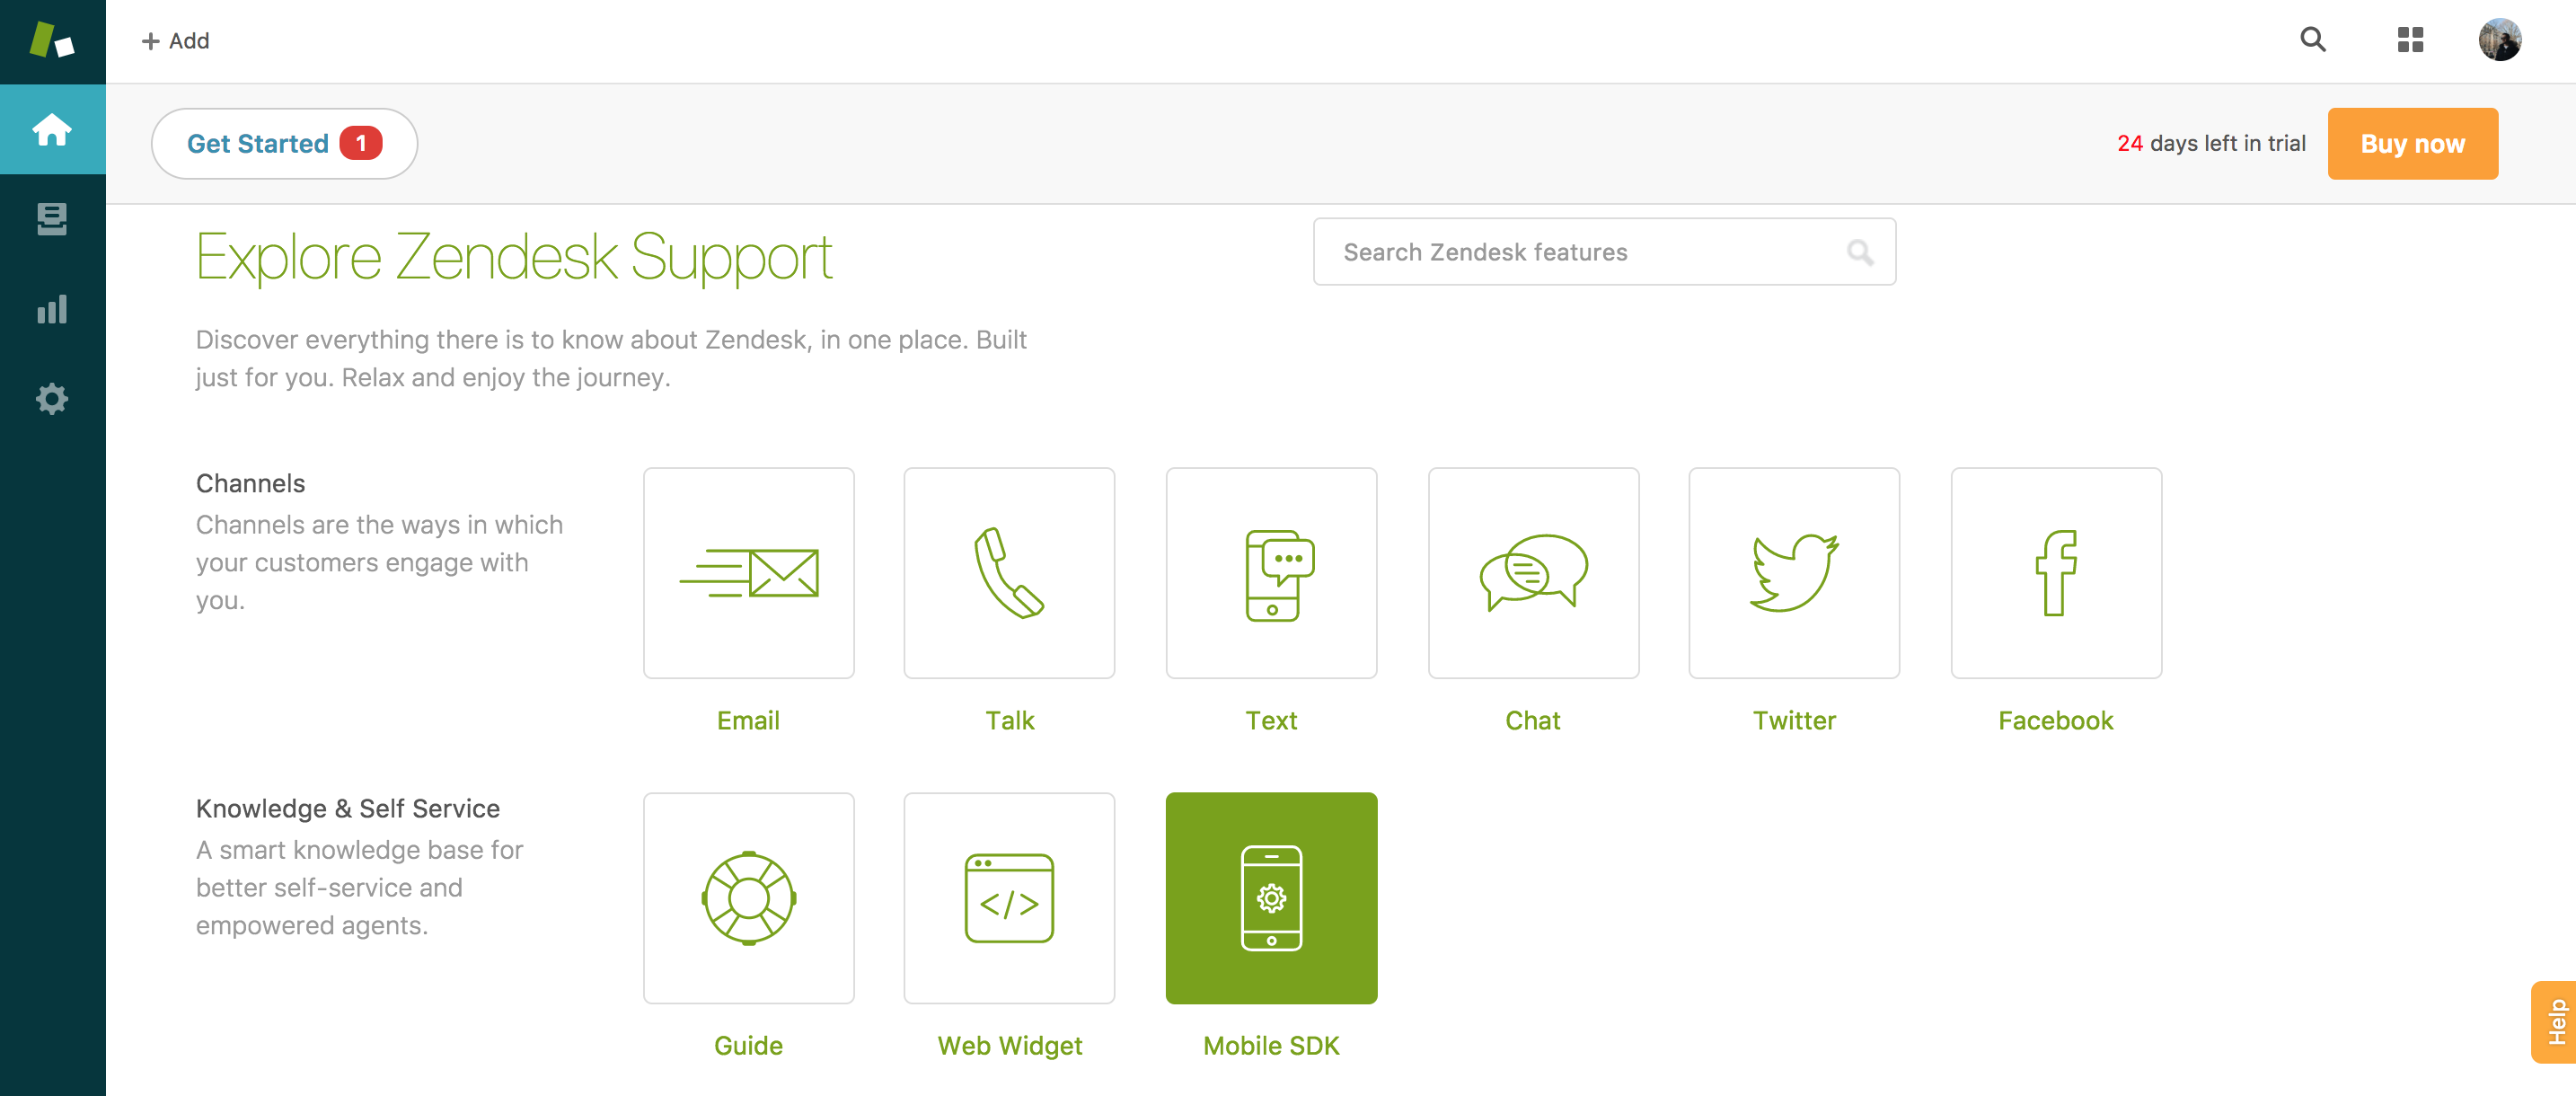 How to integrate Zendesk Mobile SDK with Firebase using AWS